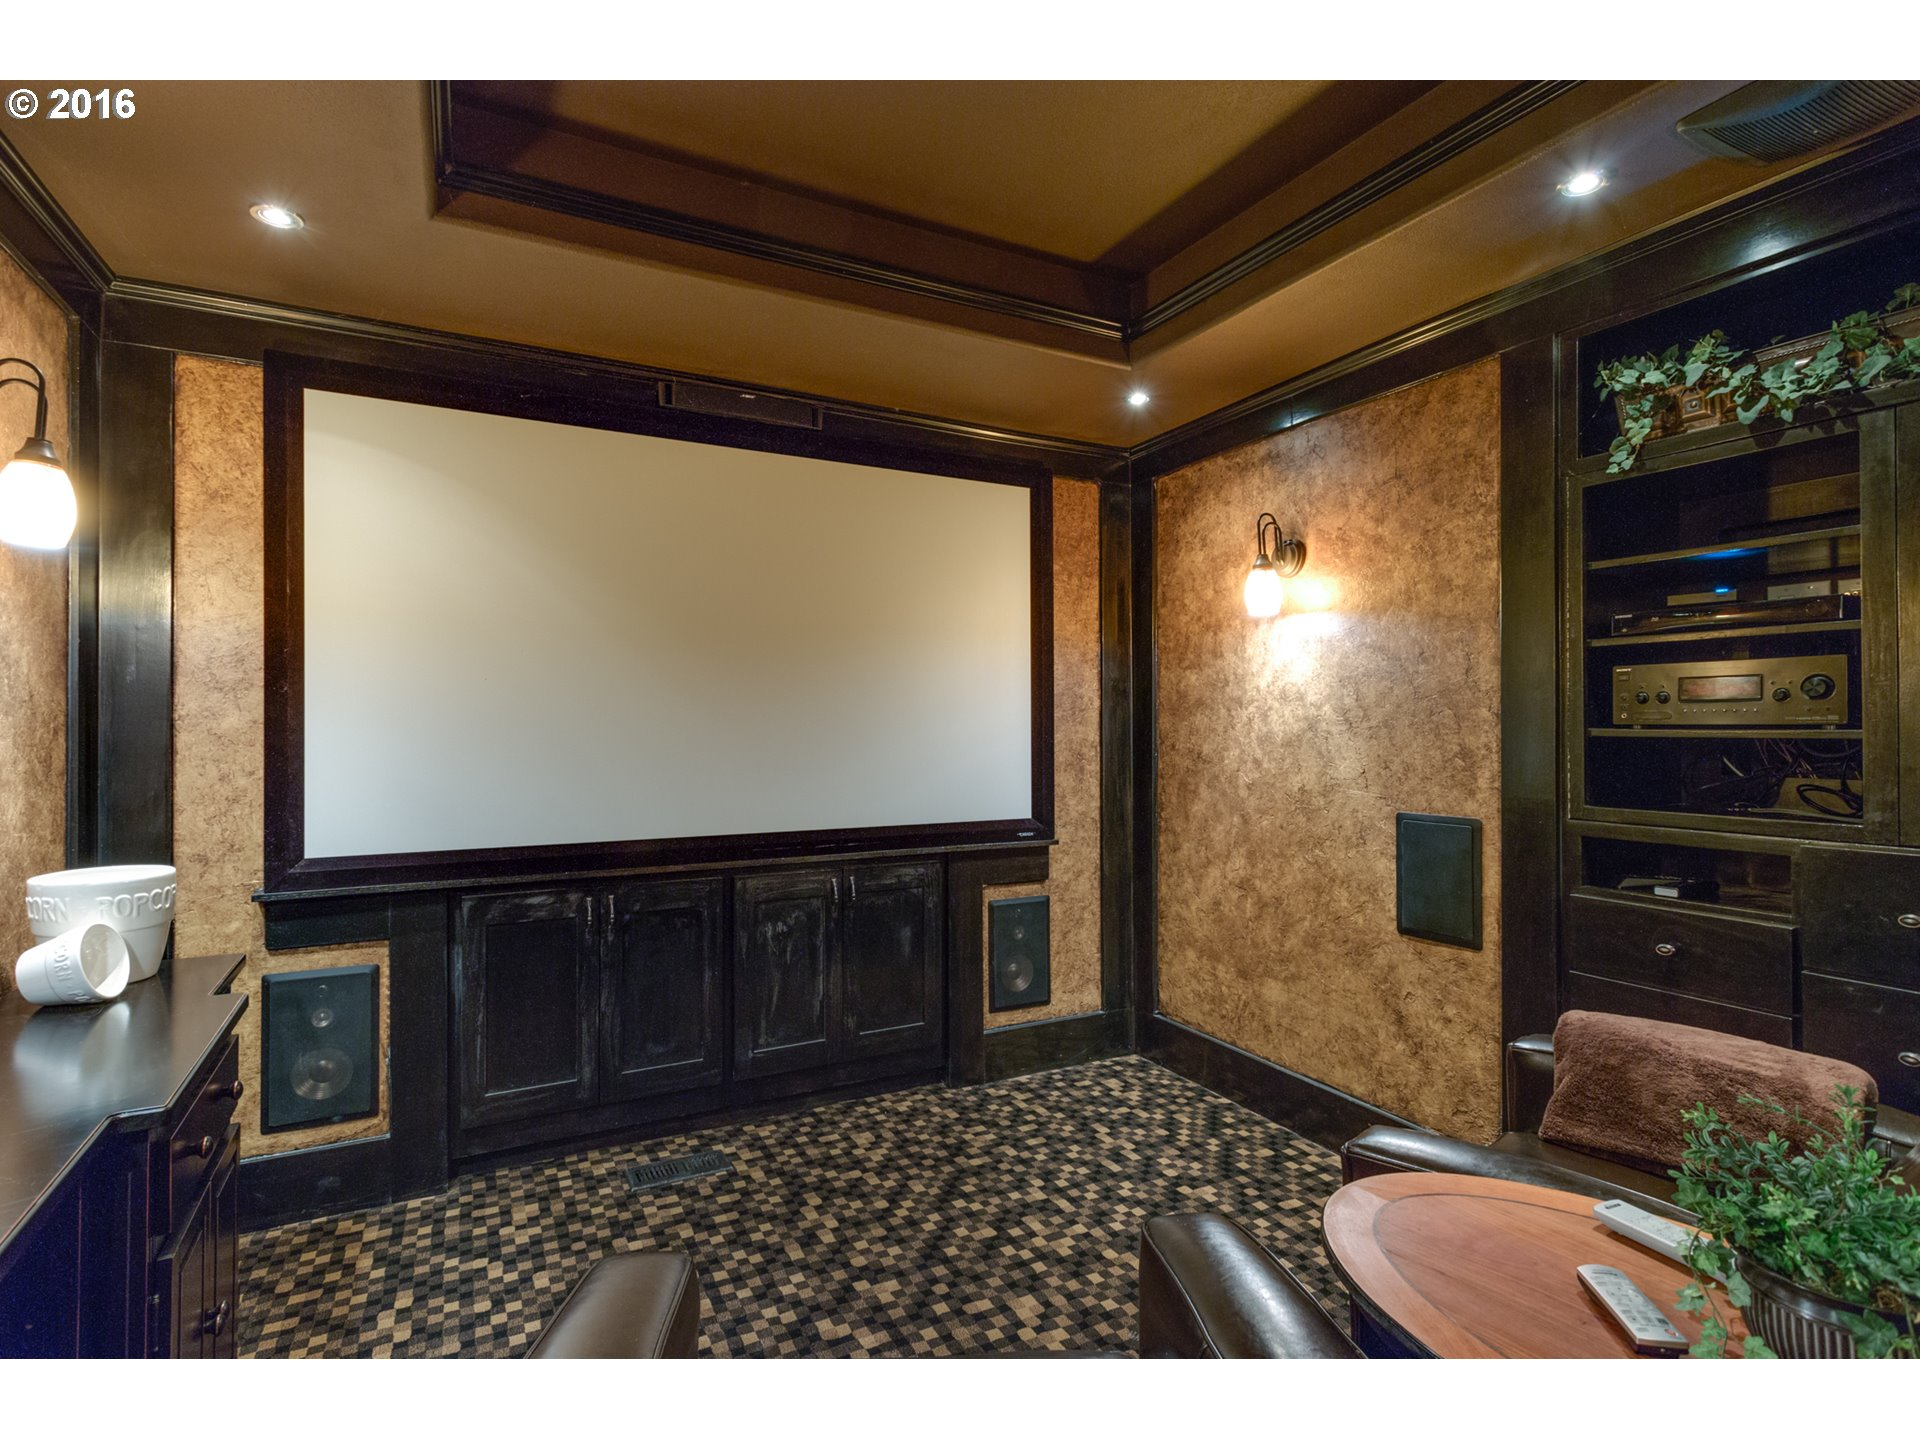 HOME THEATER MATT MORRIS 360-773-7333